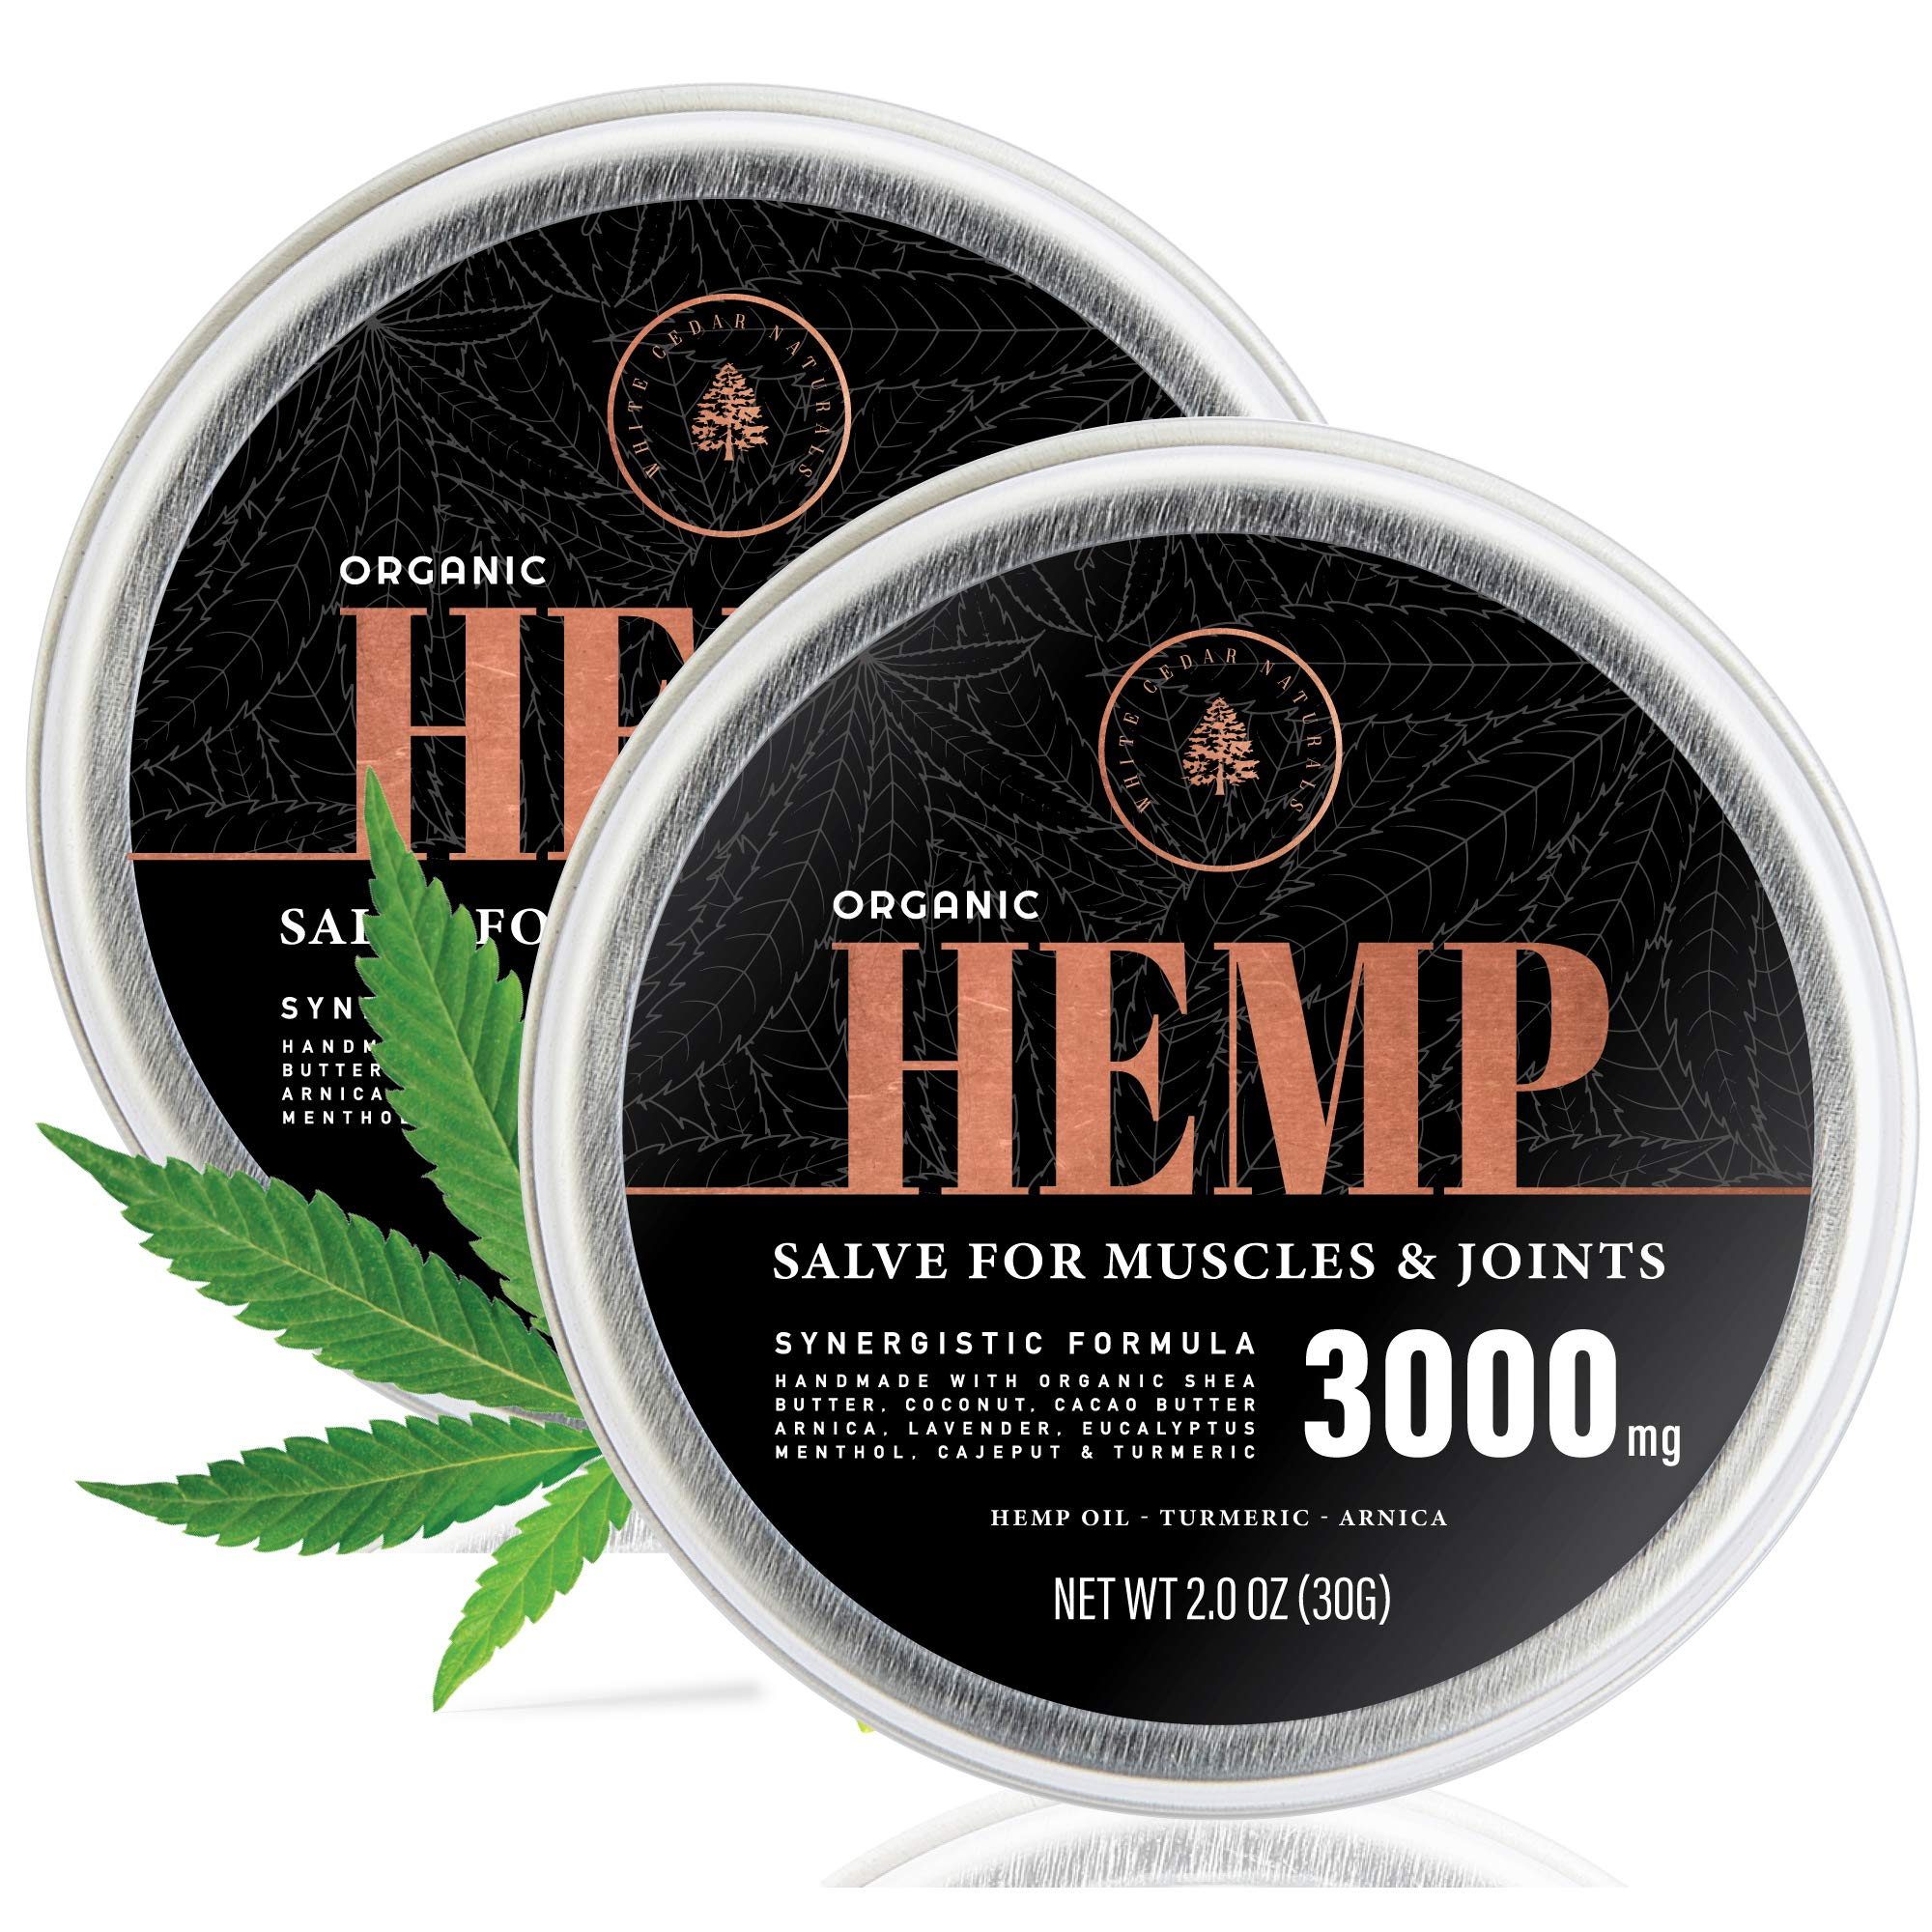 (2-Pack) Organic Hemp Salve - 3000MG - Anti Inflammatory Cream Formula for Back, Joints & Muscles - Handmade with Arnica Montana, Menthol, Aloe Leaf, Shea Butter, Cacao Butter & Turmeric - 2oz by CBD Oil for Pain Relief Research Lab